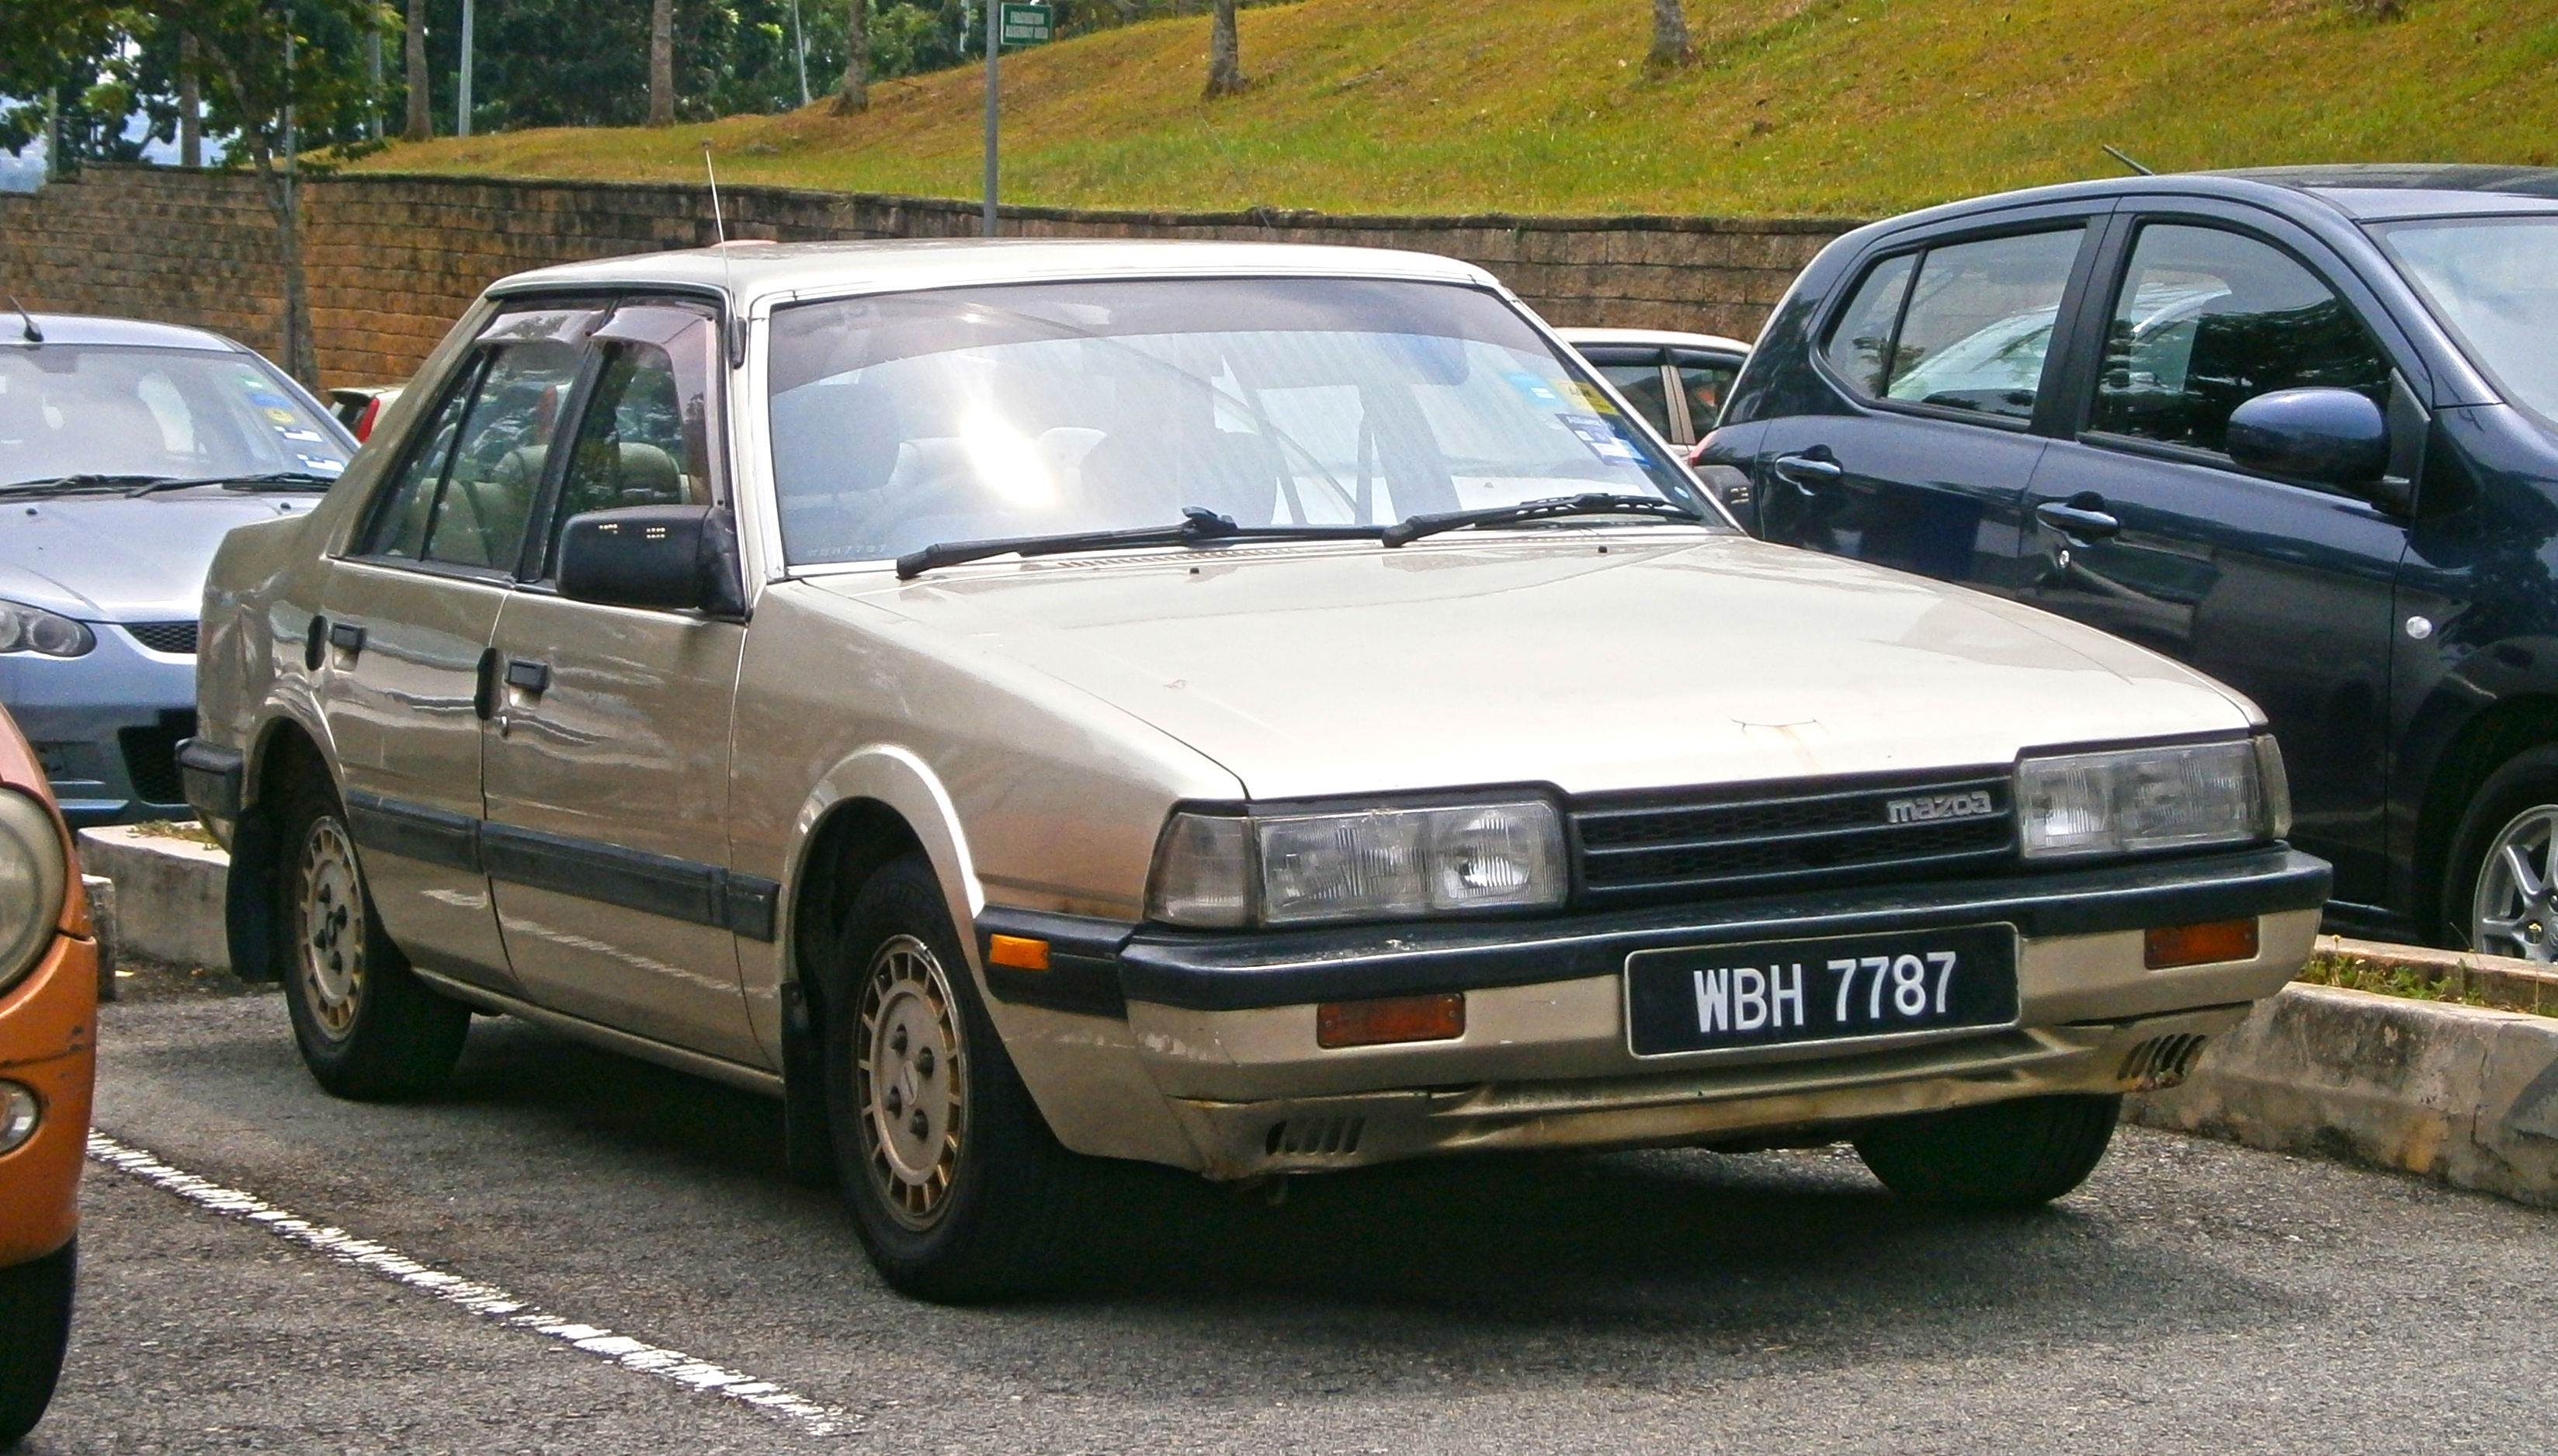 File:1987 Mazda 626 (GC) 1.8i 4-door sedan (19553947930).jpg ...